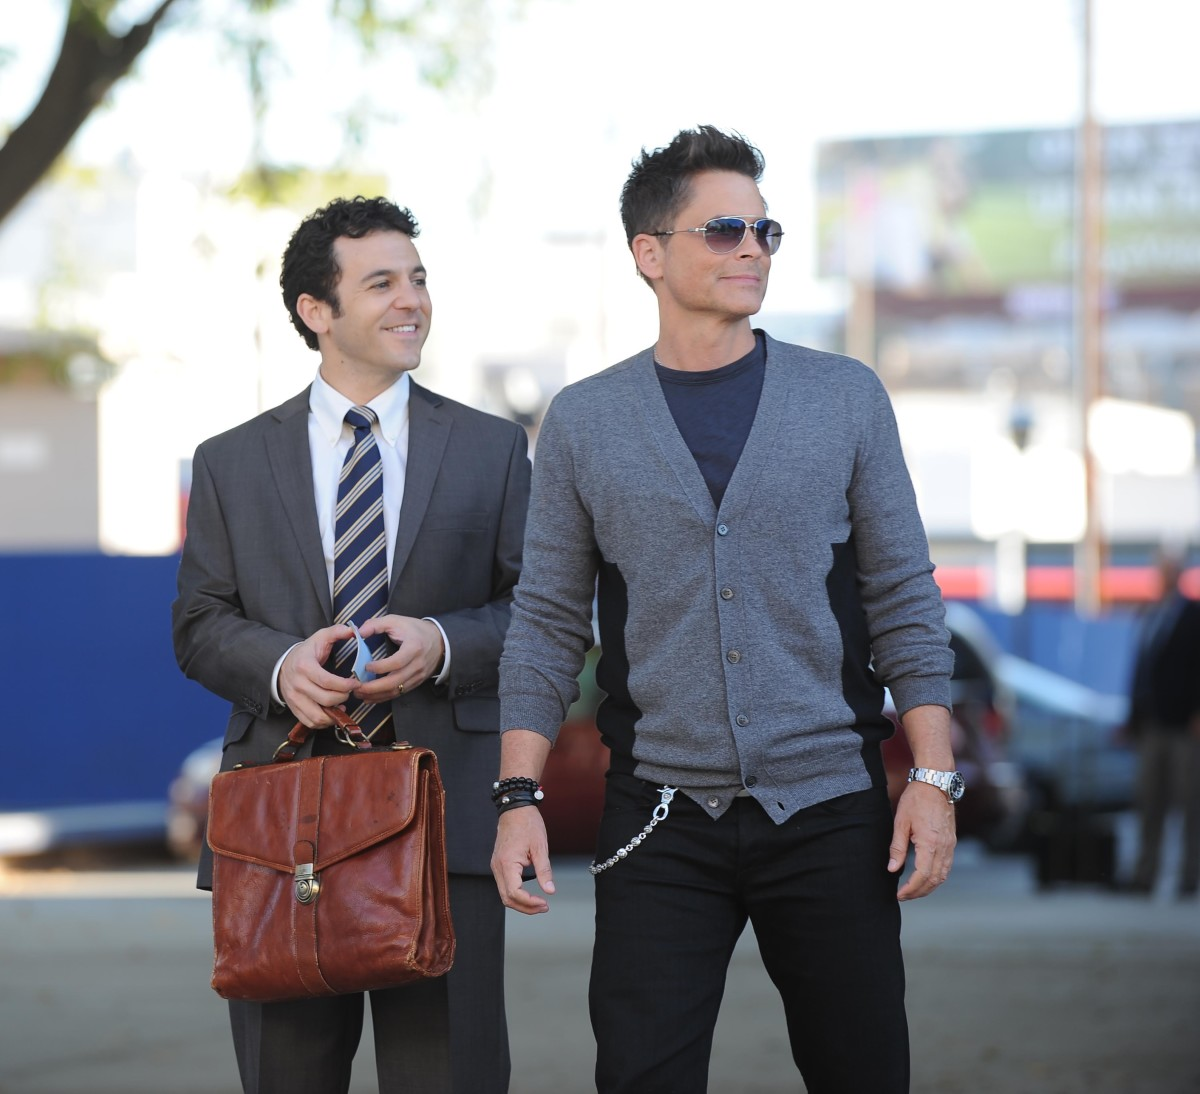 The Grinder Photo